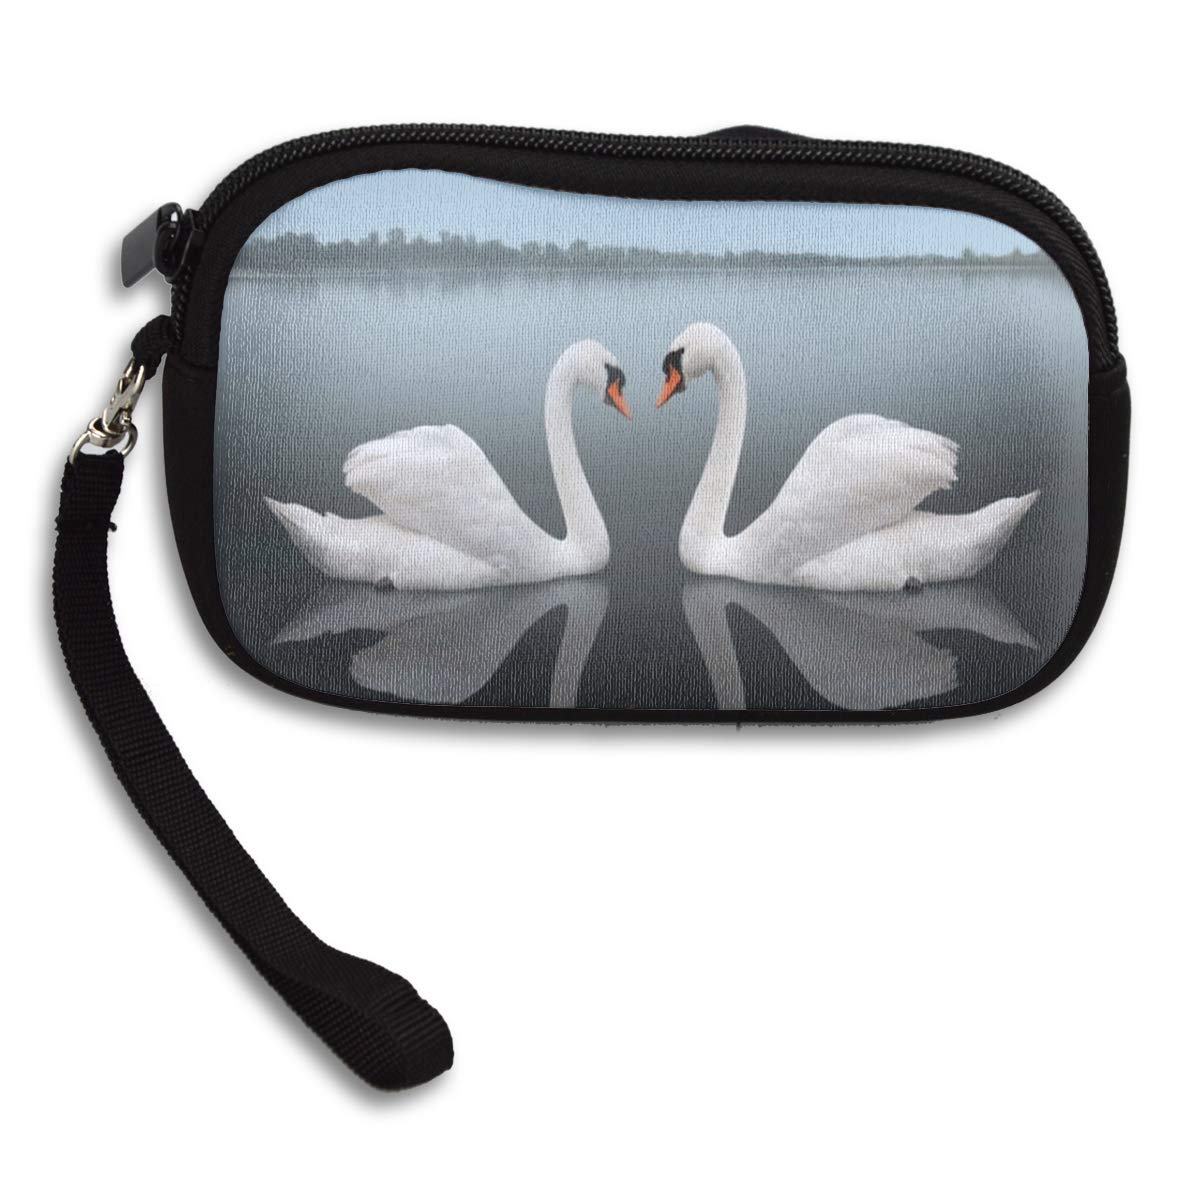 Coin Purse Meeting Mist Pair Lake Swans Men Zip Wallets Change Hot Holder